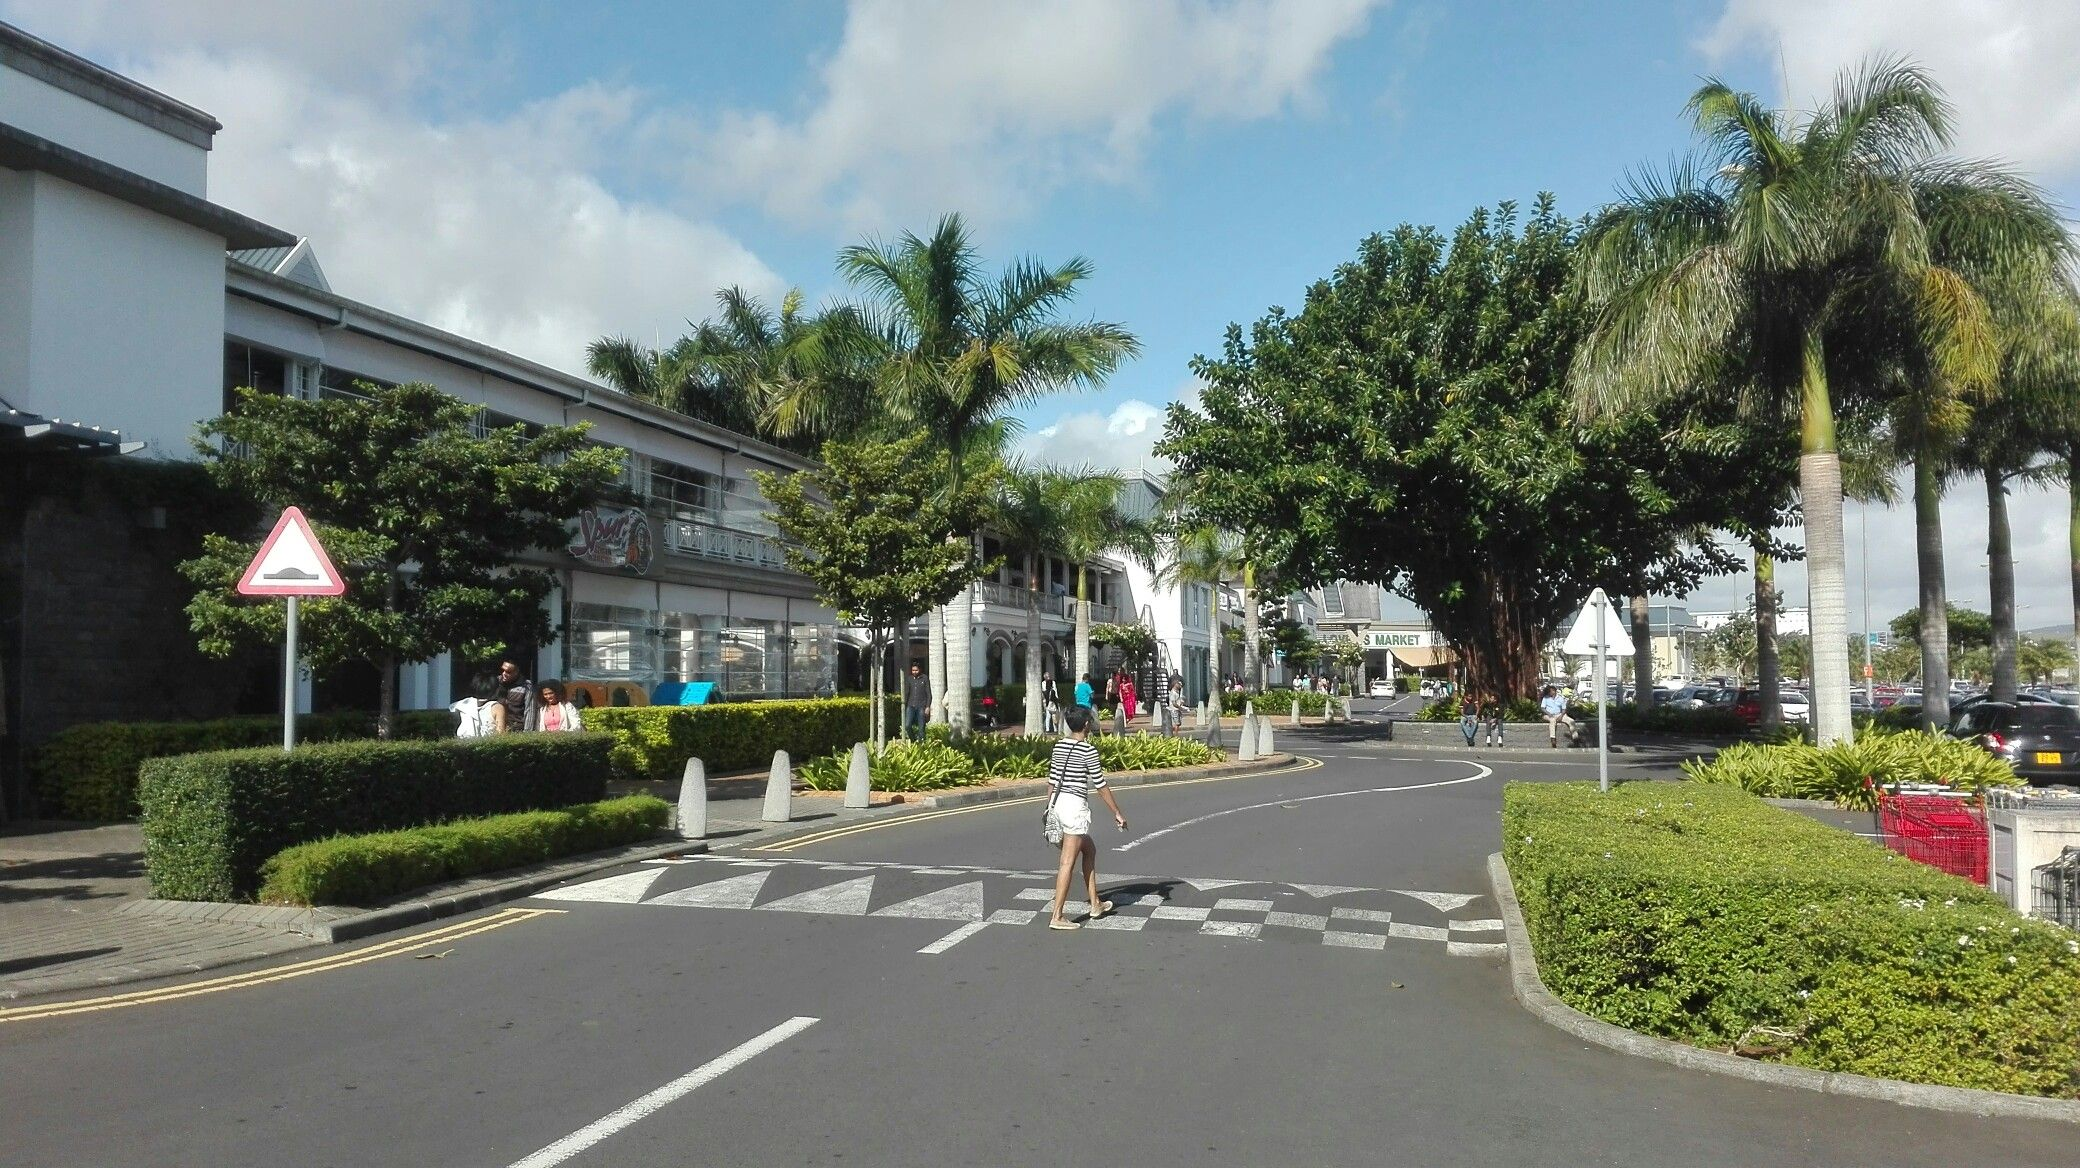 Bagatelle Shopping Centre Mall Of Mauritius Moka Mauritius Mauritius Island Mauritius Maurice Island